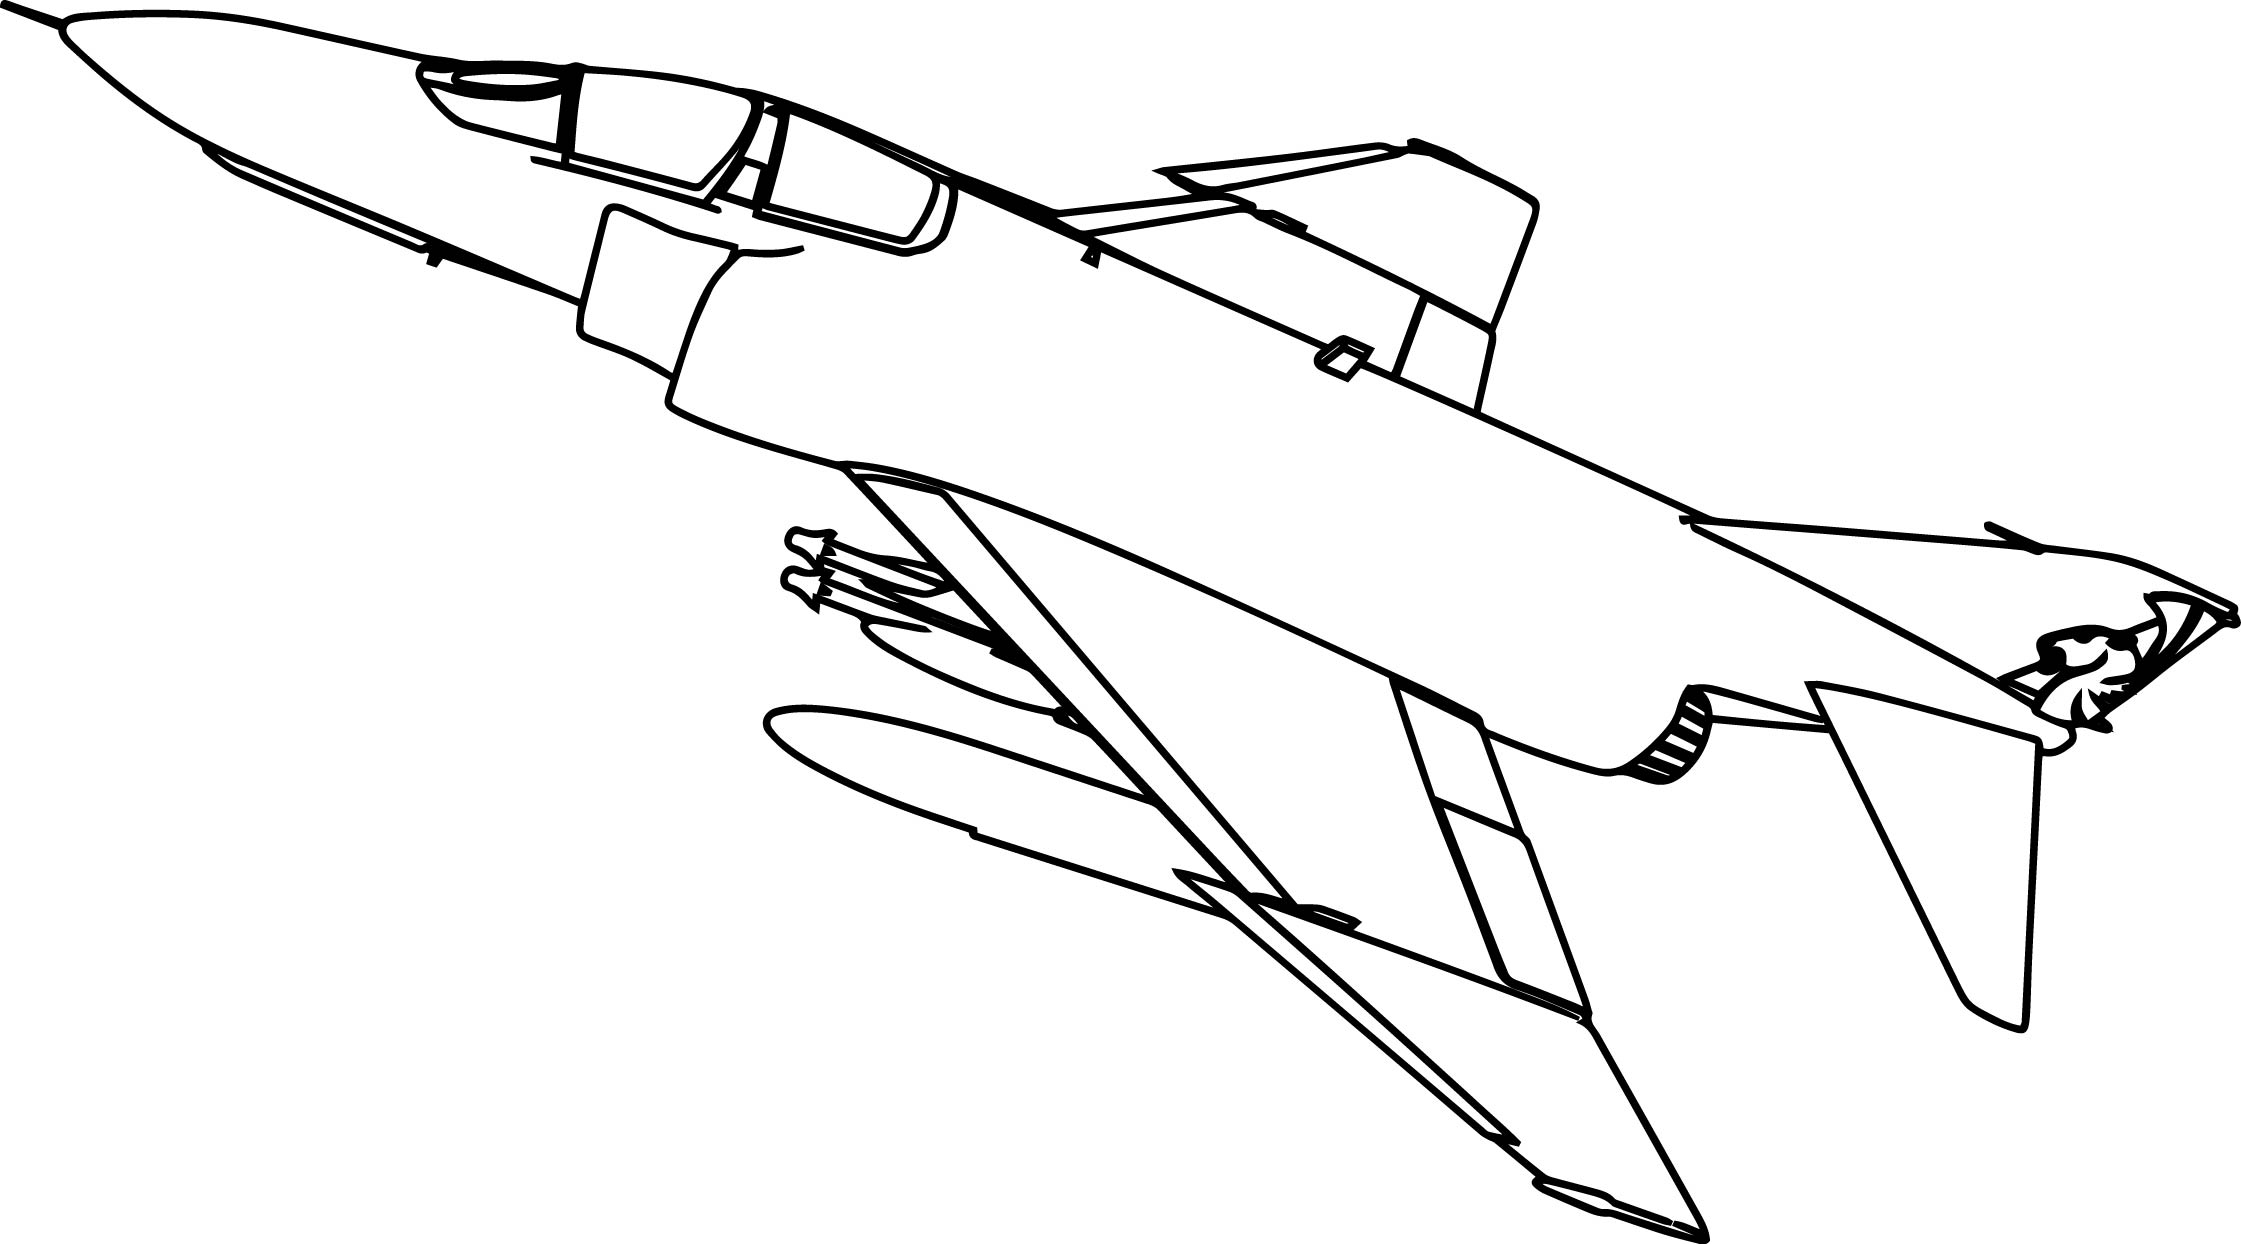 Phantom King Plane Coloring Page Sheet